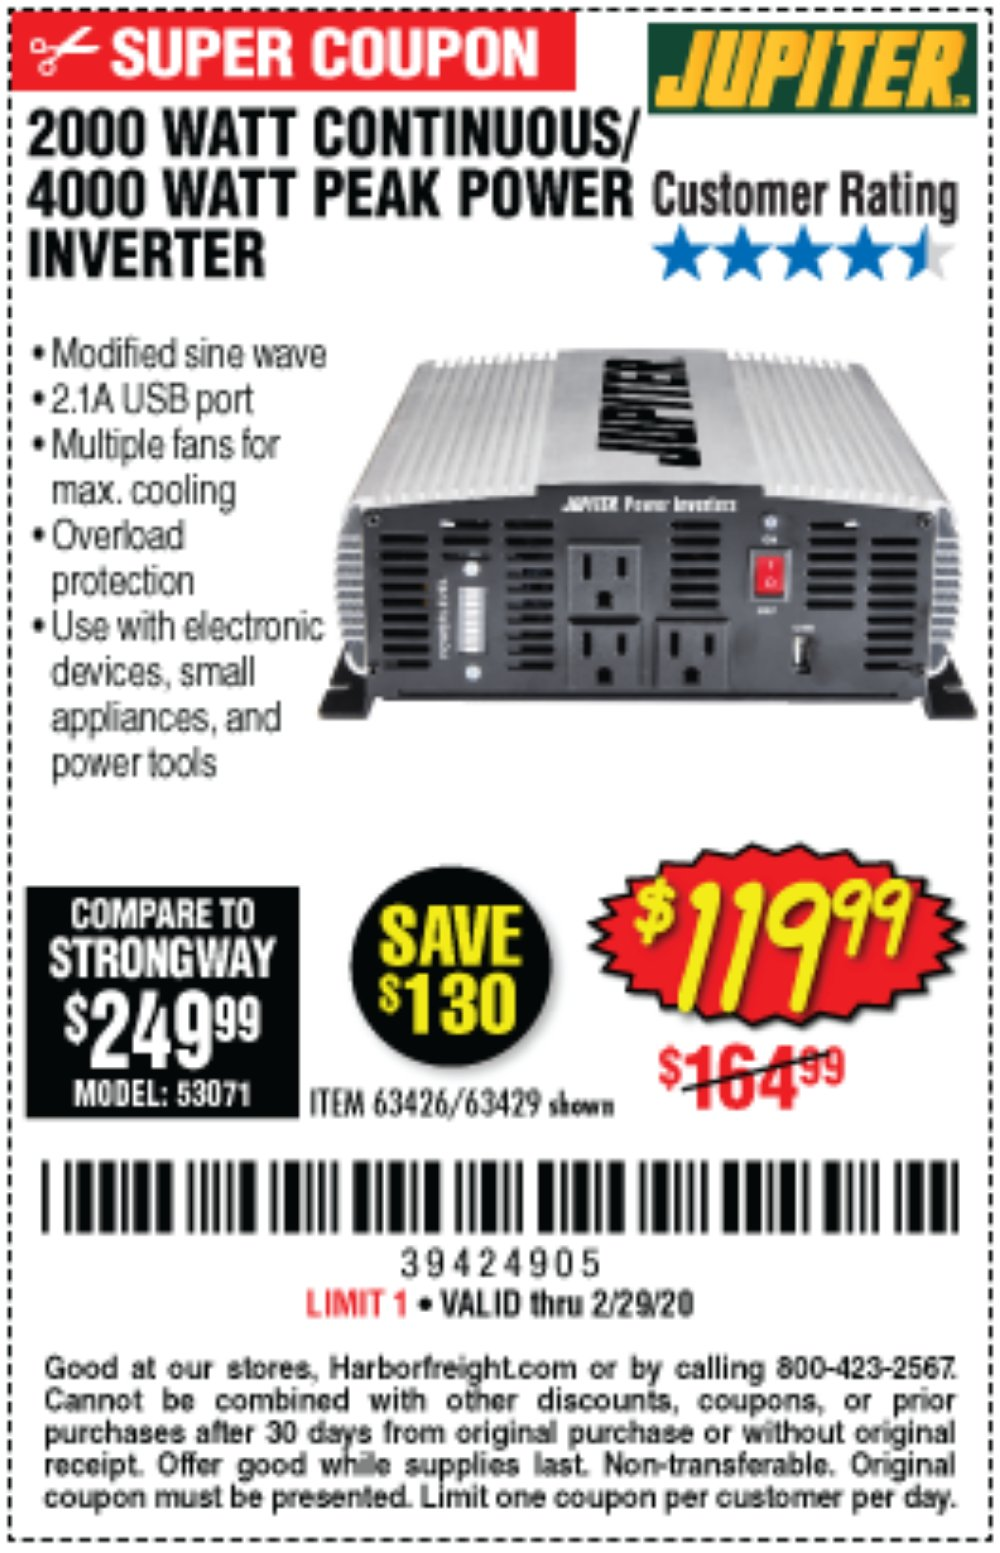 Harbor Freight Coupon, HF Coupons - 2000 Watt Continuous/4000 Watt Peak Power Inverter